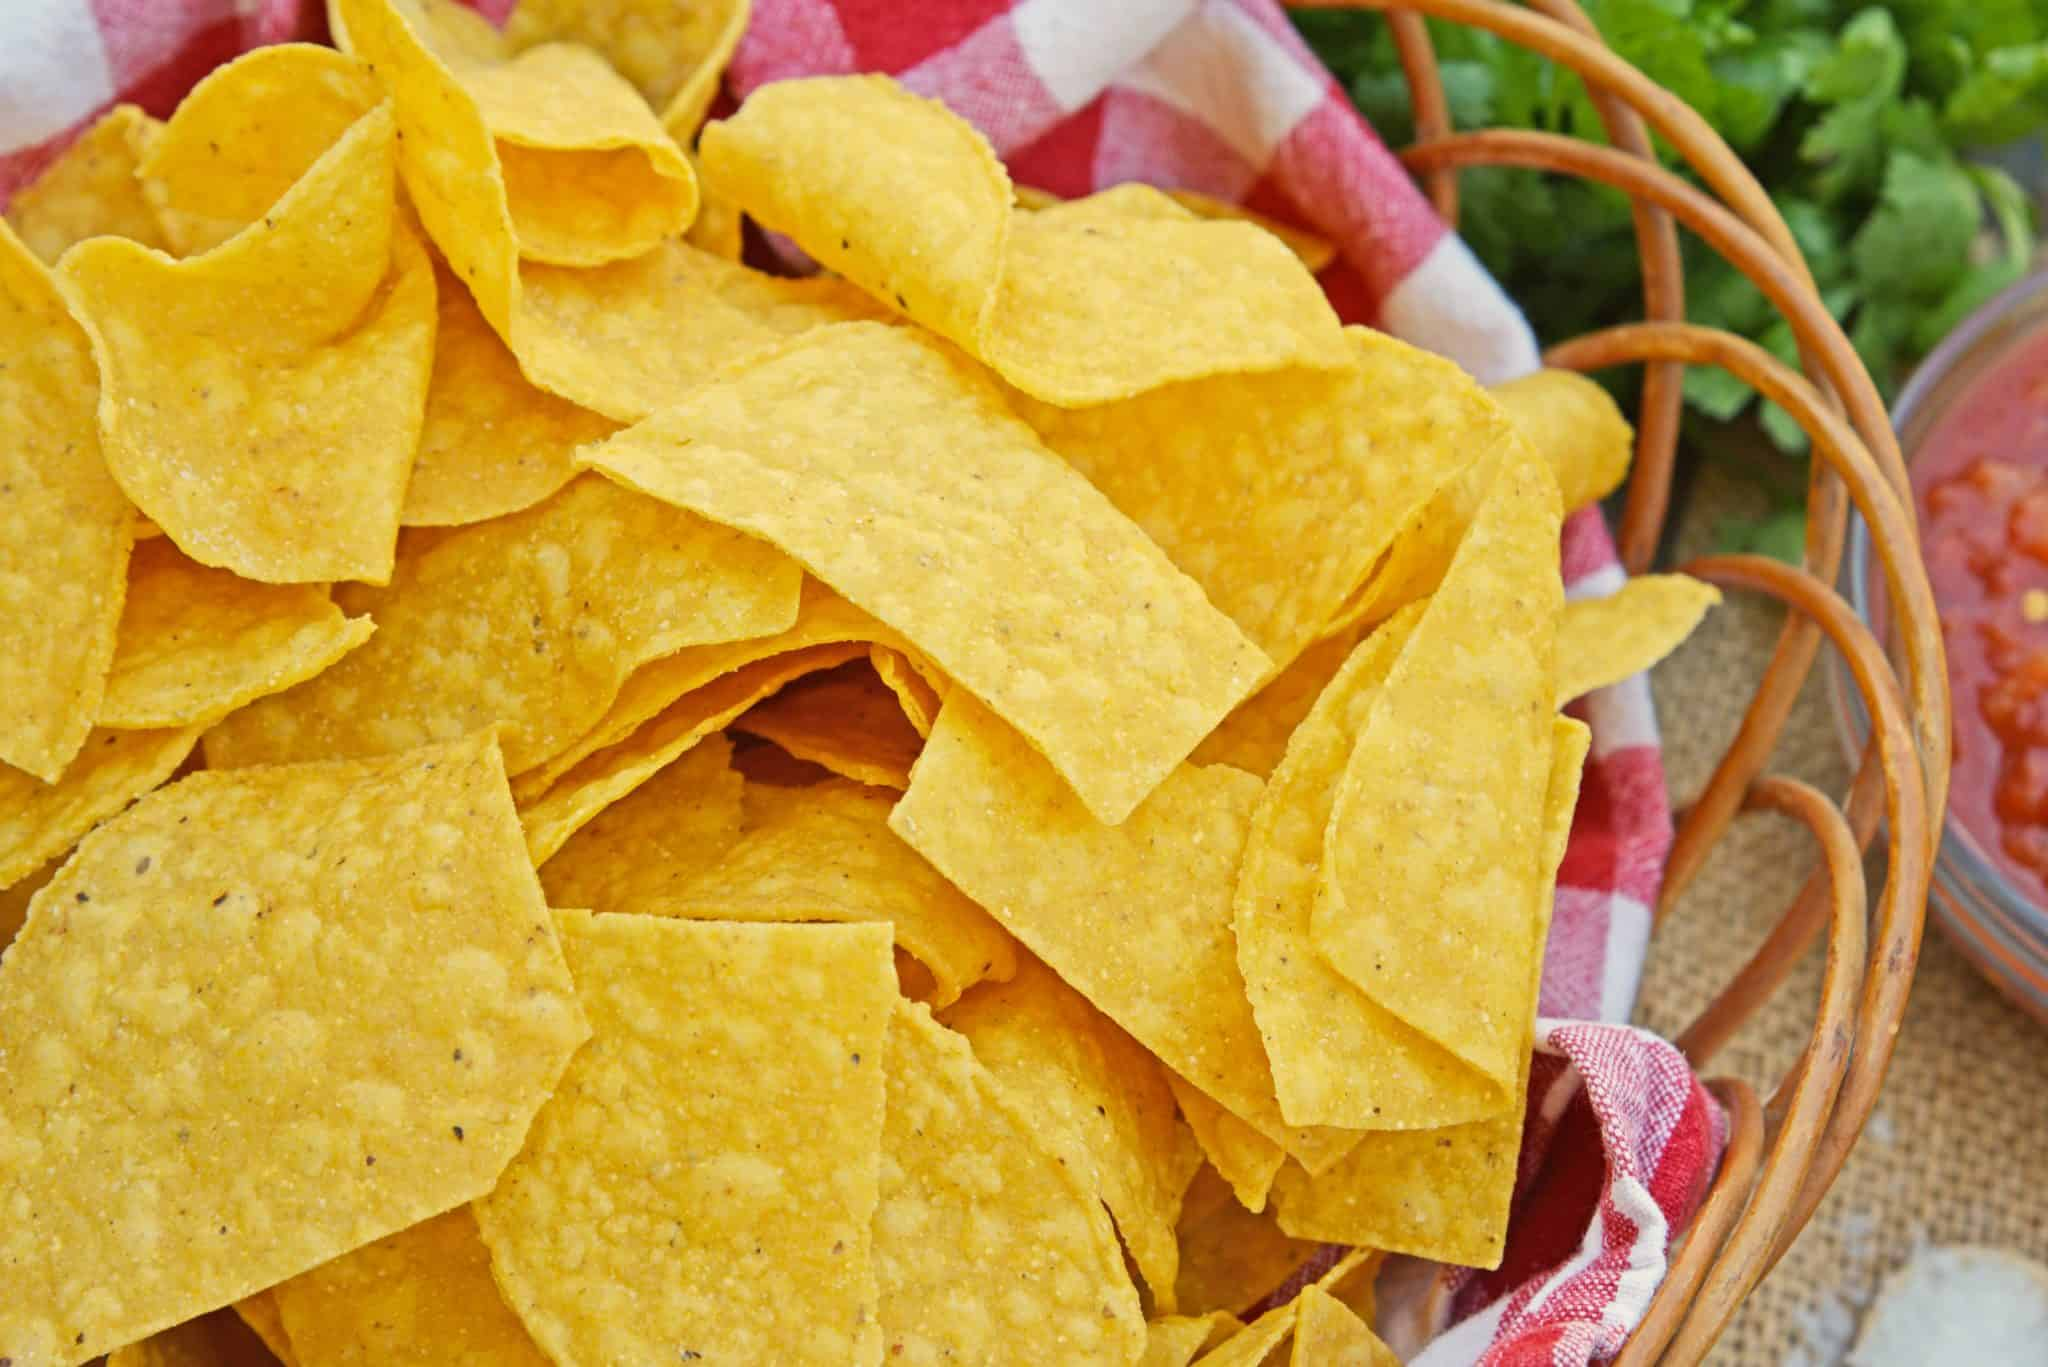 Can i make tortilla chips out of corn tortillas